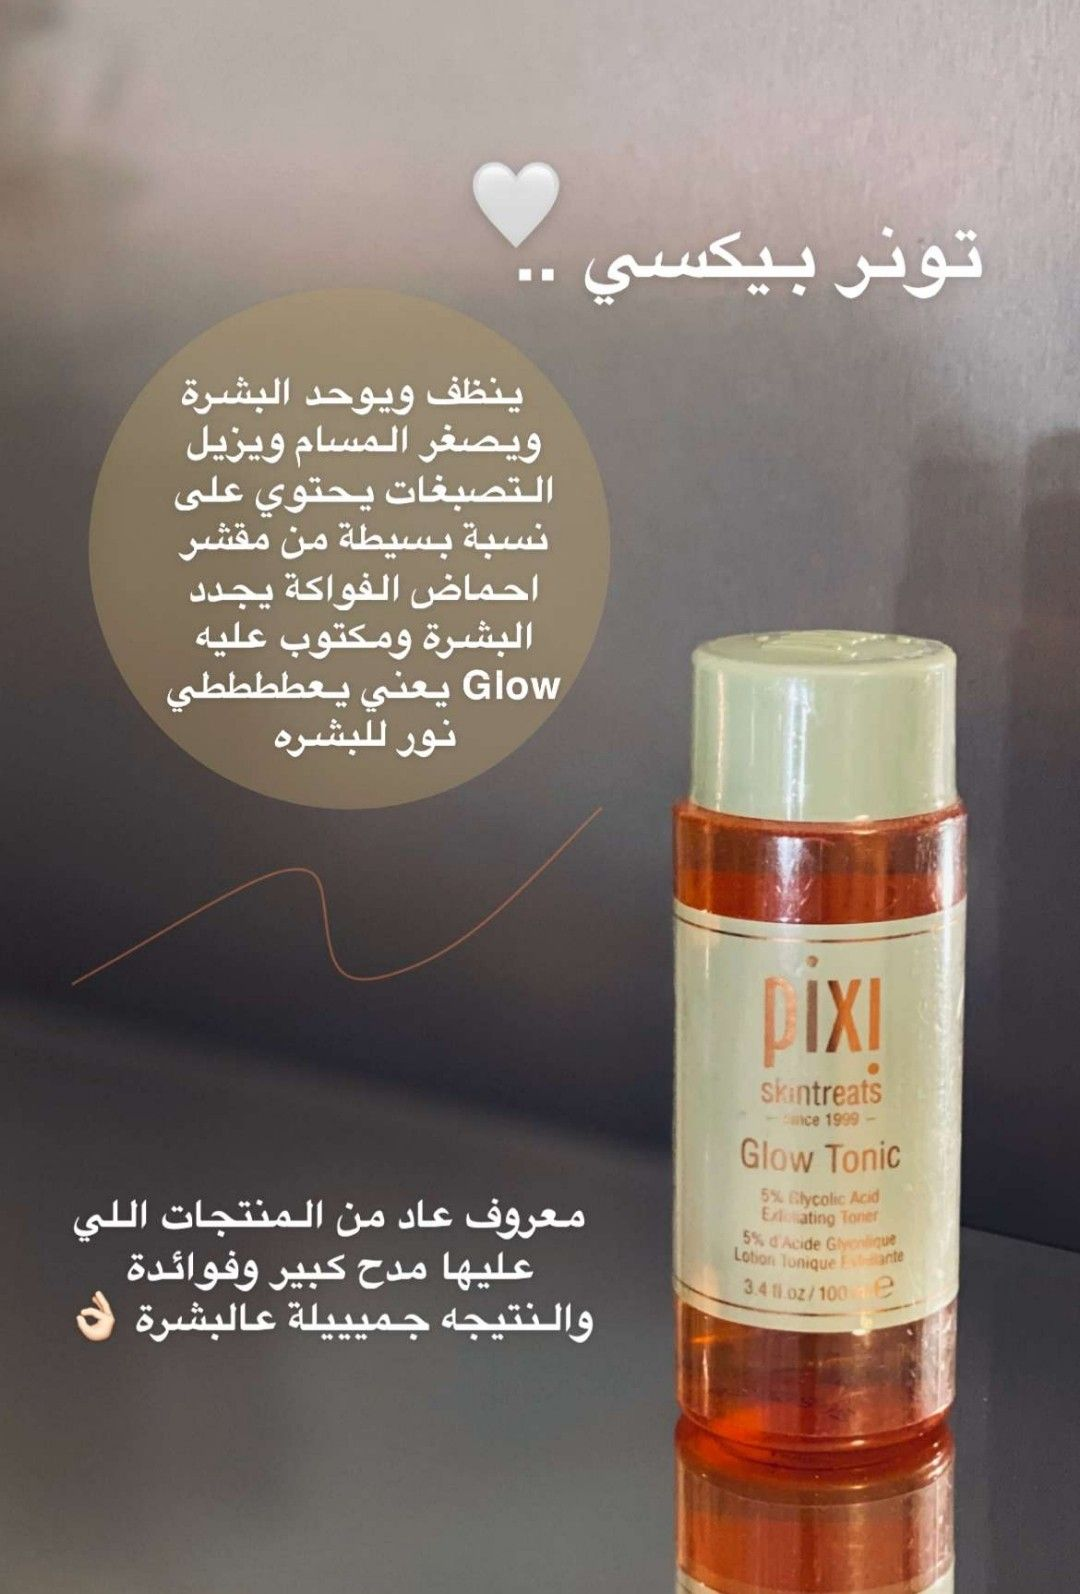 Pin By Asma Alotaibi On Care In 2021 Beauty Skin Care Routine Skin Care Routine Beauty Skin